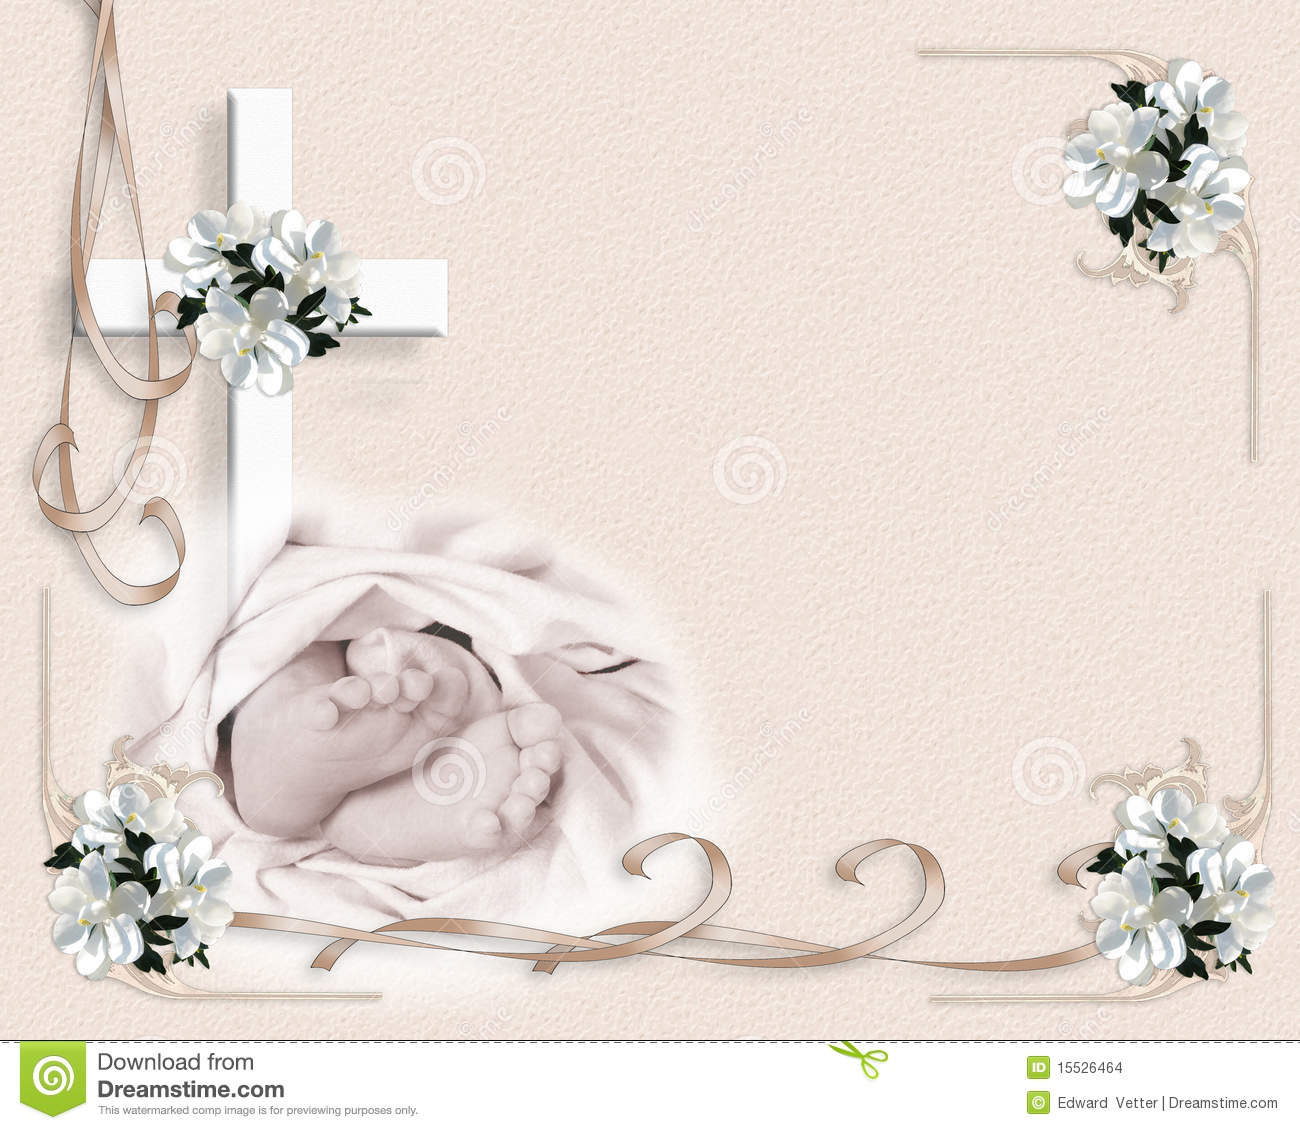 christening invitation free template 30 baptism invitation templates